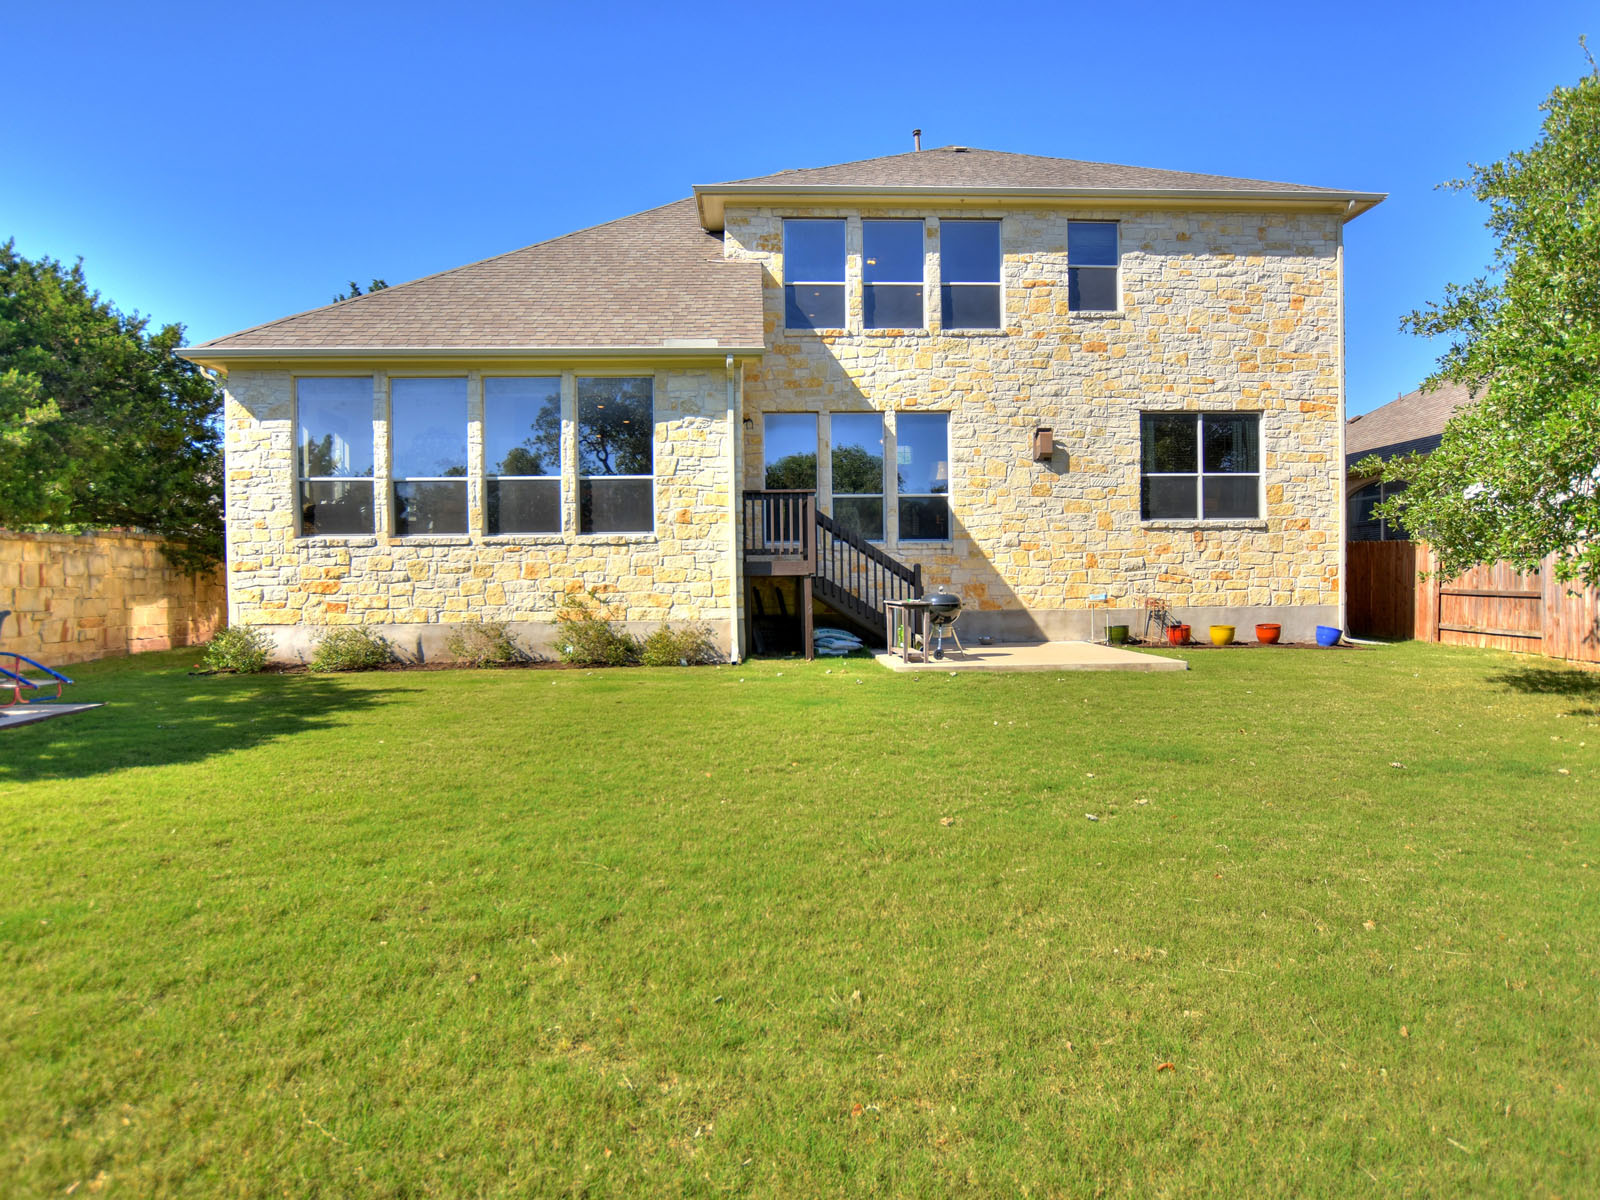 Additional photo for property listing at Greenbelt Views 211 Torrington Dr Austin, Texas 78737 United States